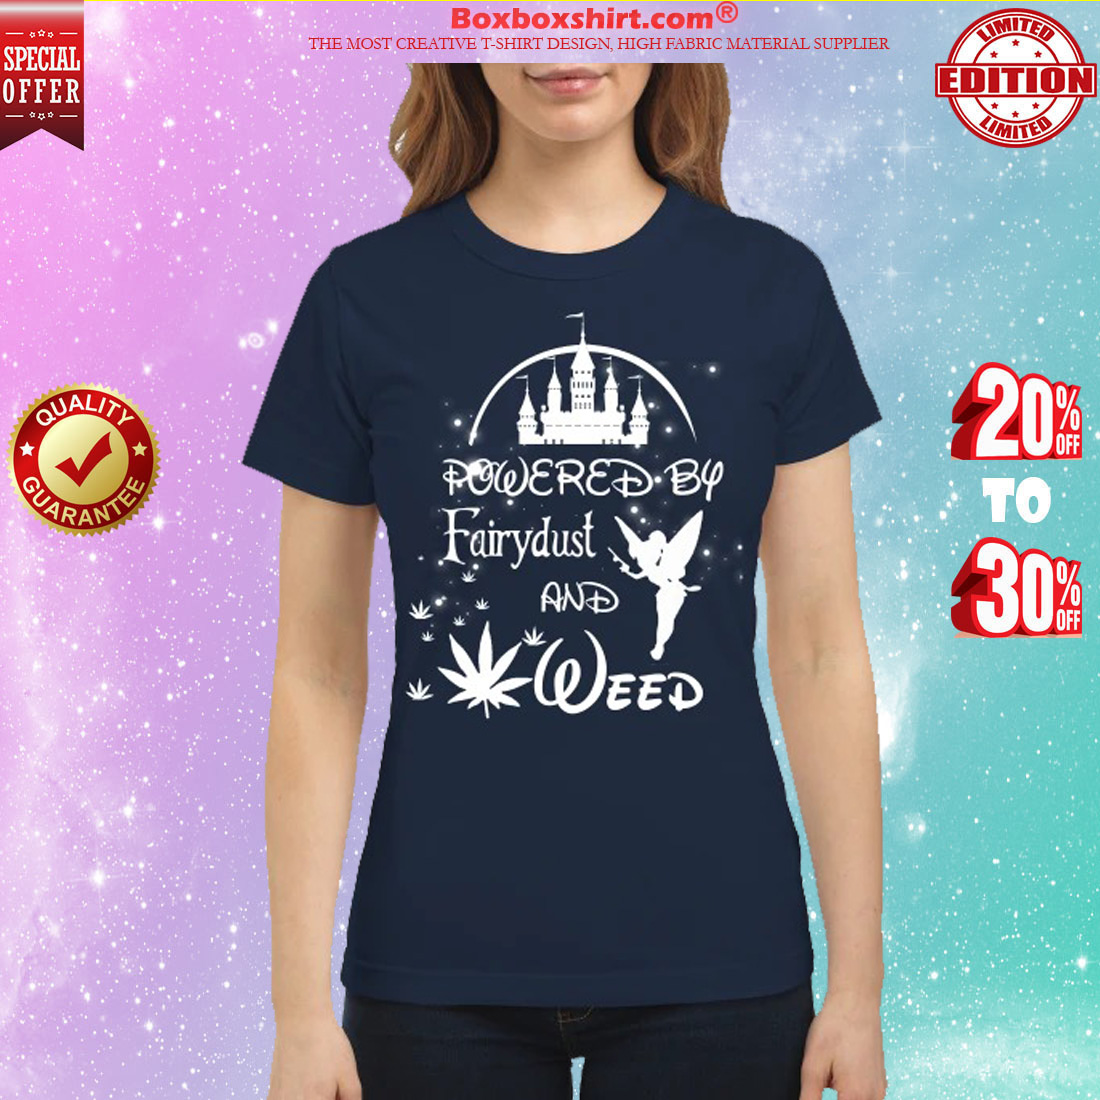 Disney Powered by Fairydust and weed classic shirt